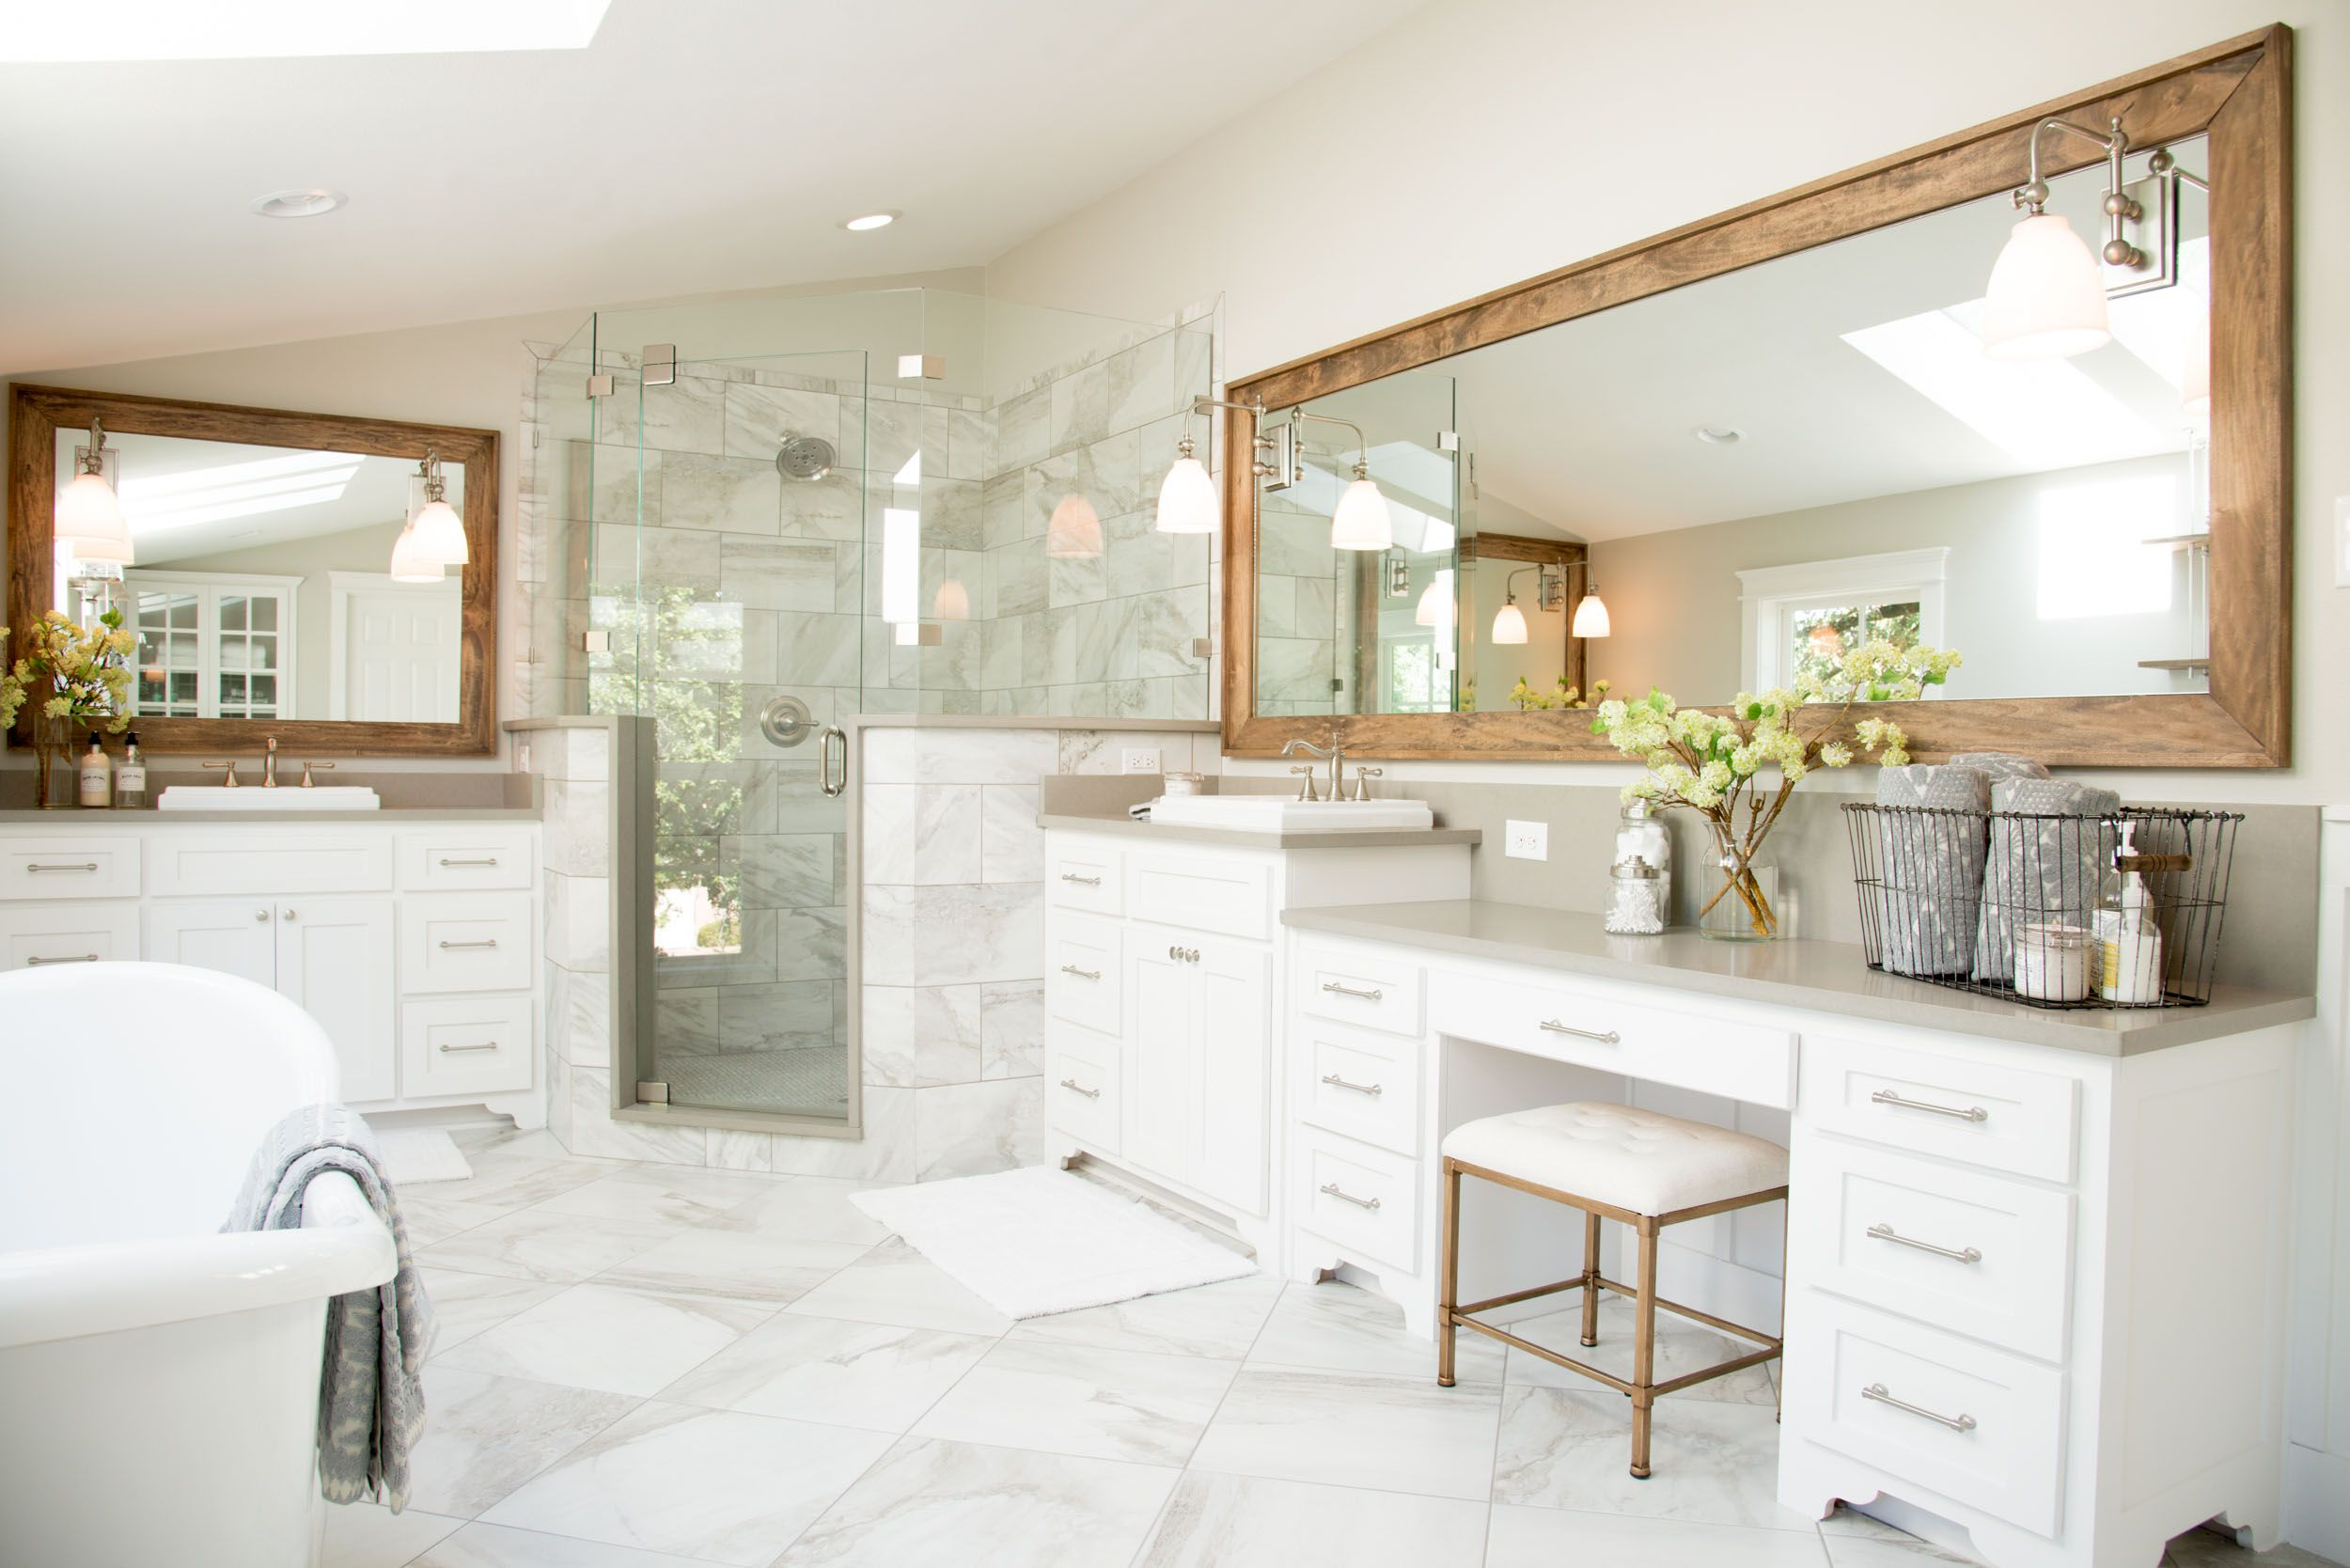 Season Episode Pinterest House Seasons Joanna Gaines And - Bathroom remodel waco tx